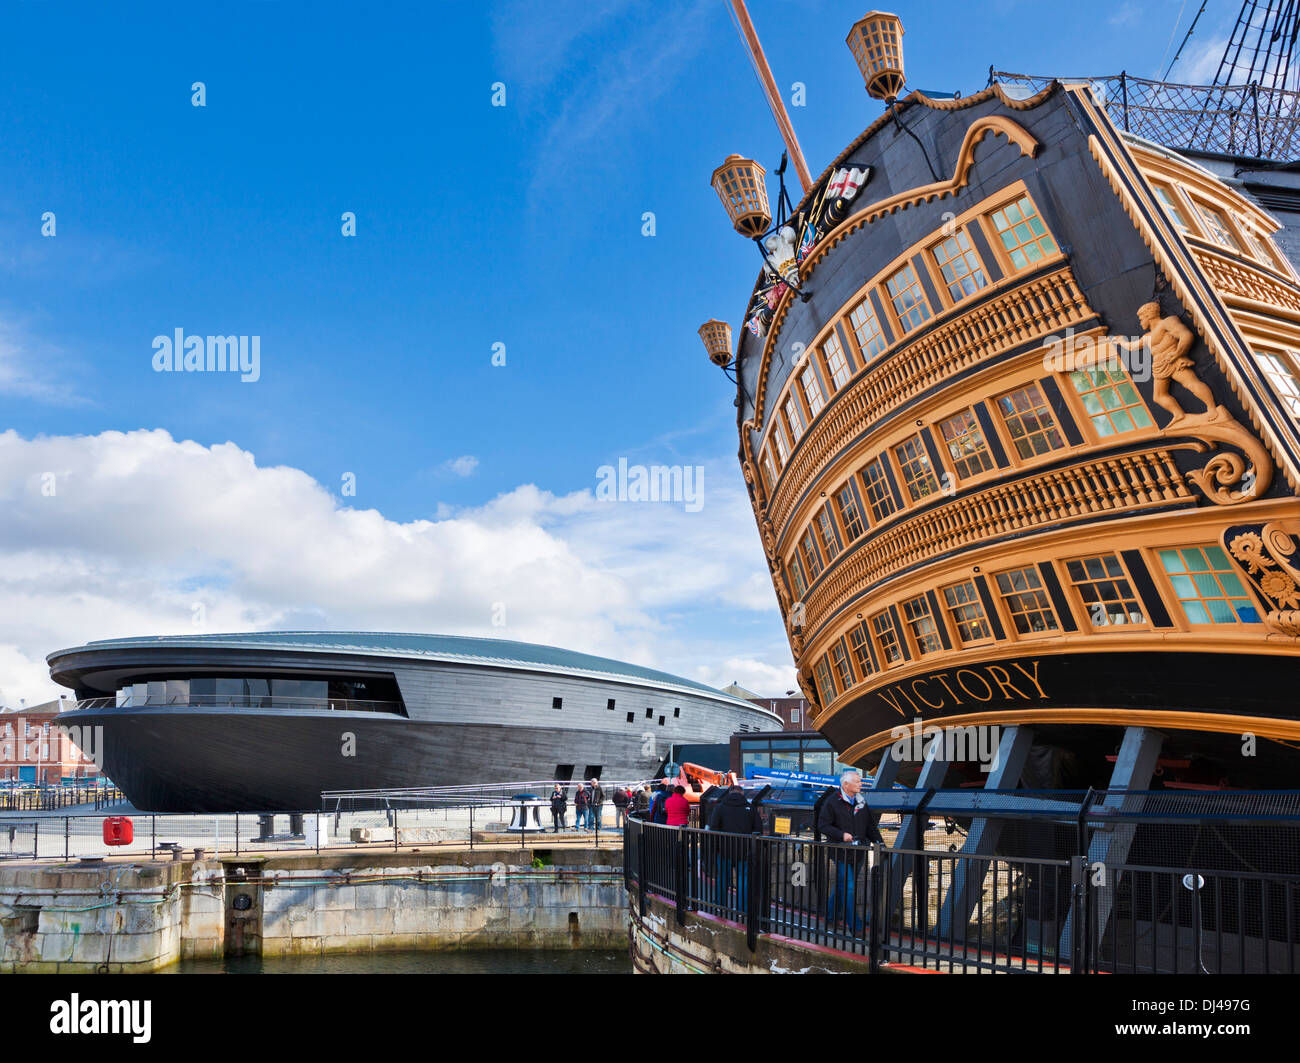 The Mary Rose Museum and HMS Victory in the Portsmouth Historic Dockyard Portsmouth Hampshire England UK GB EU Europe - Stock Image